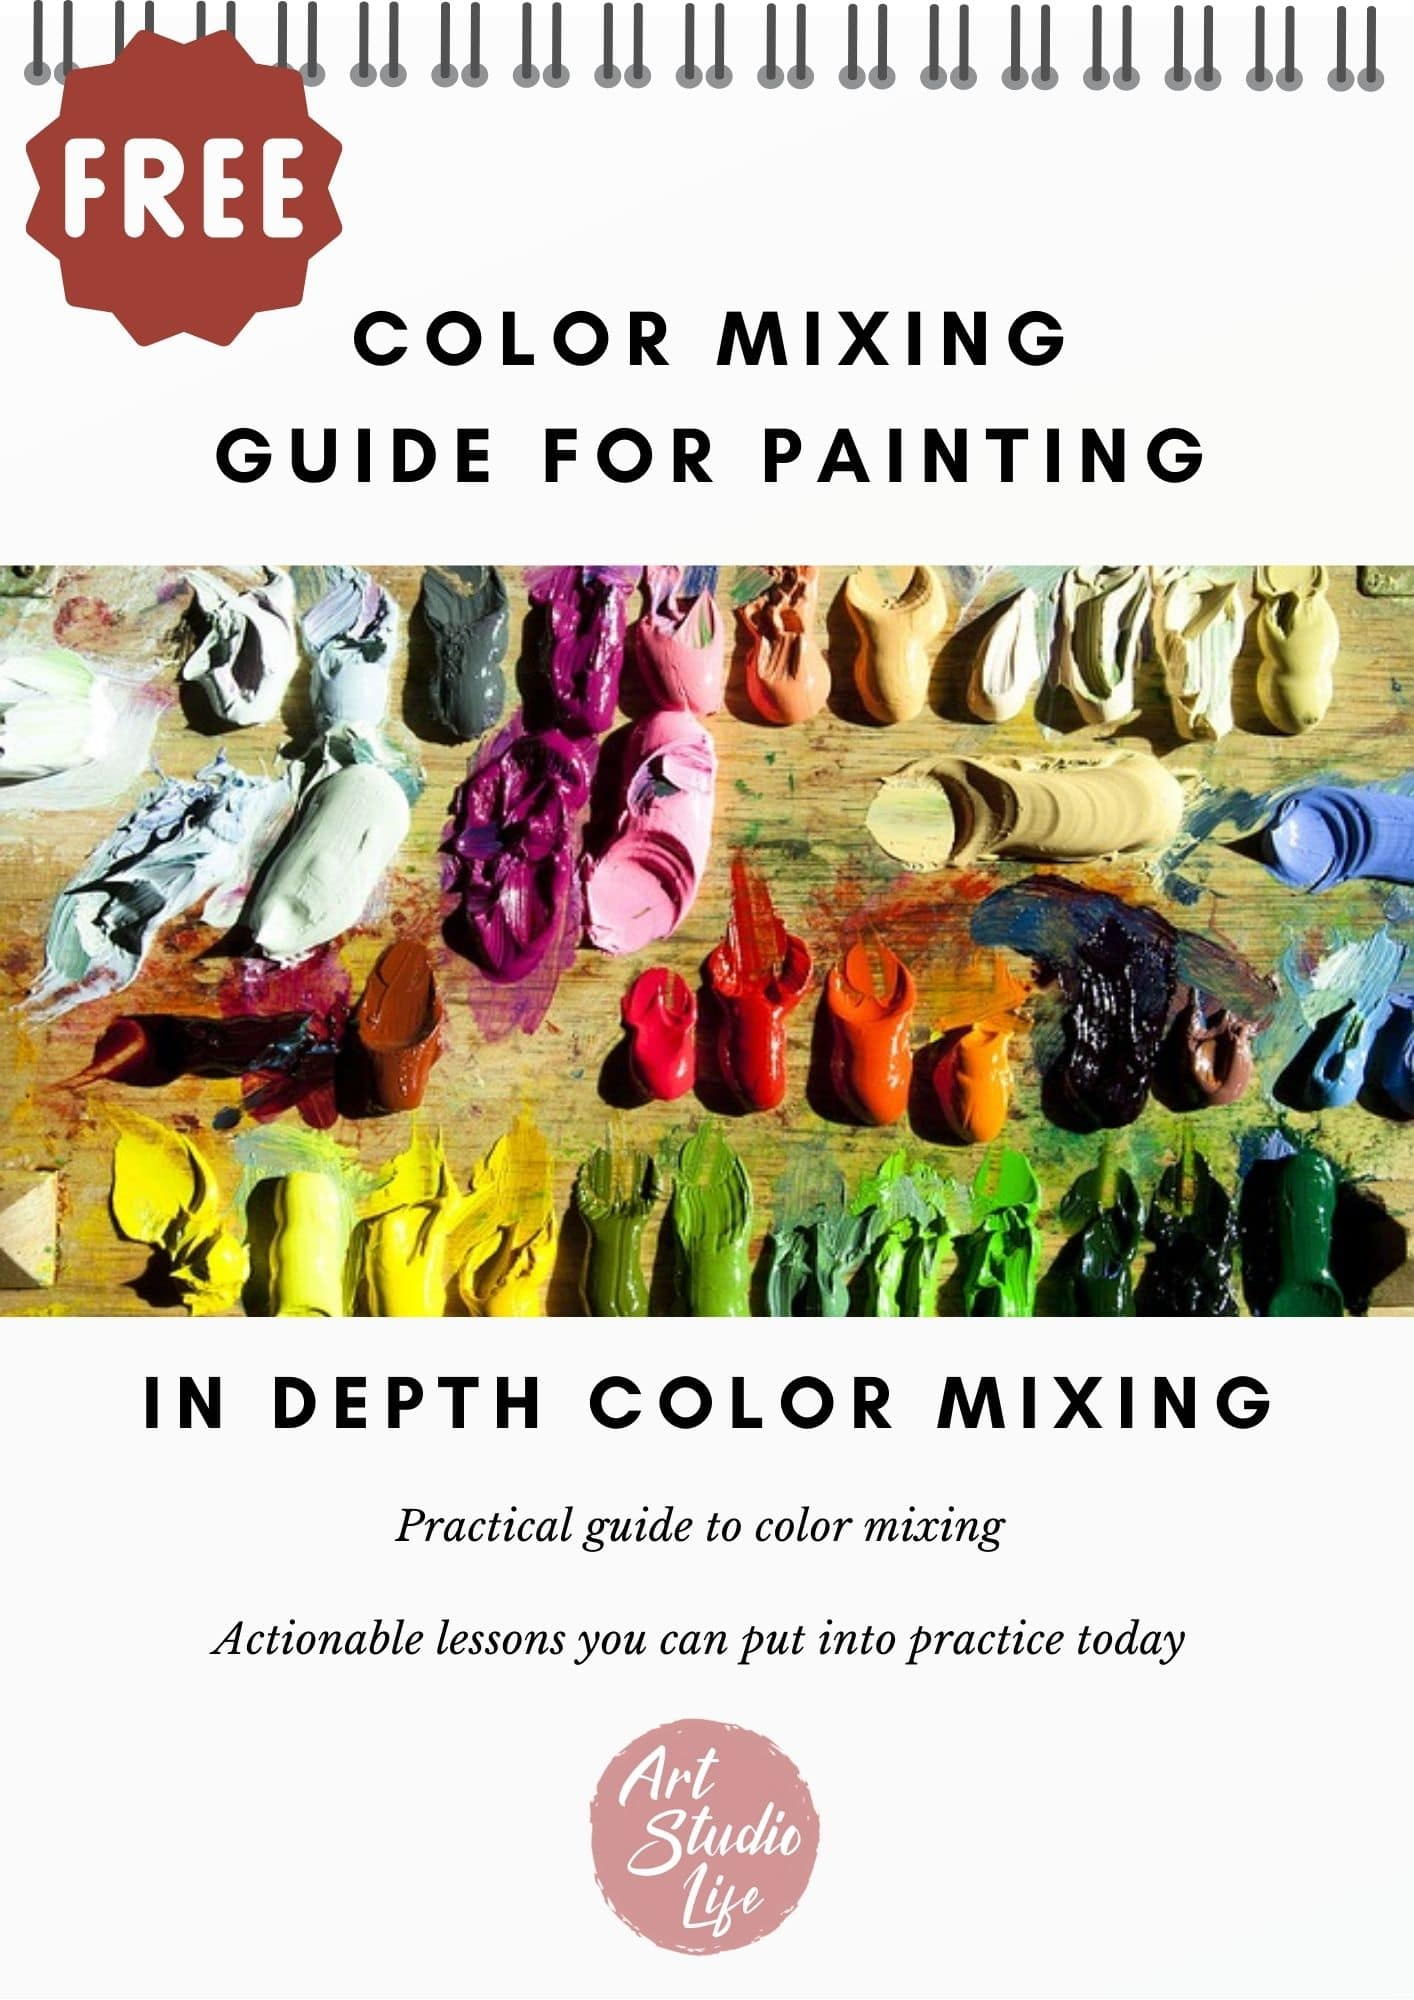 Art Studio Life Free Color Mixing Guide